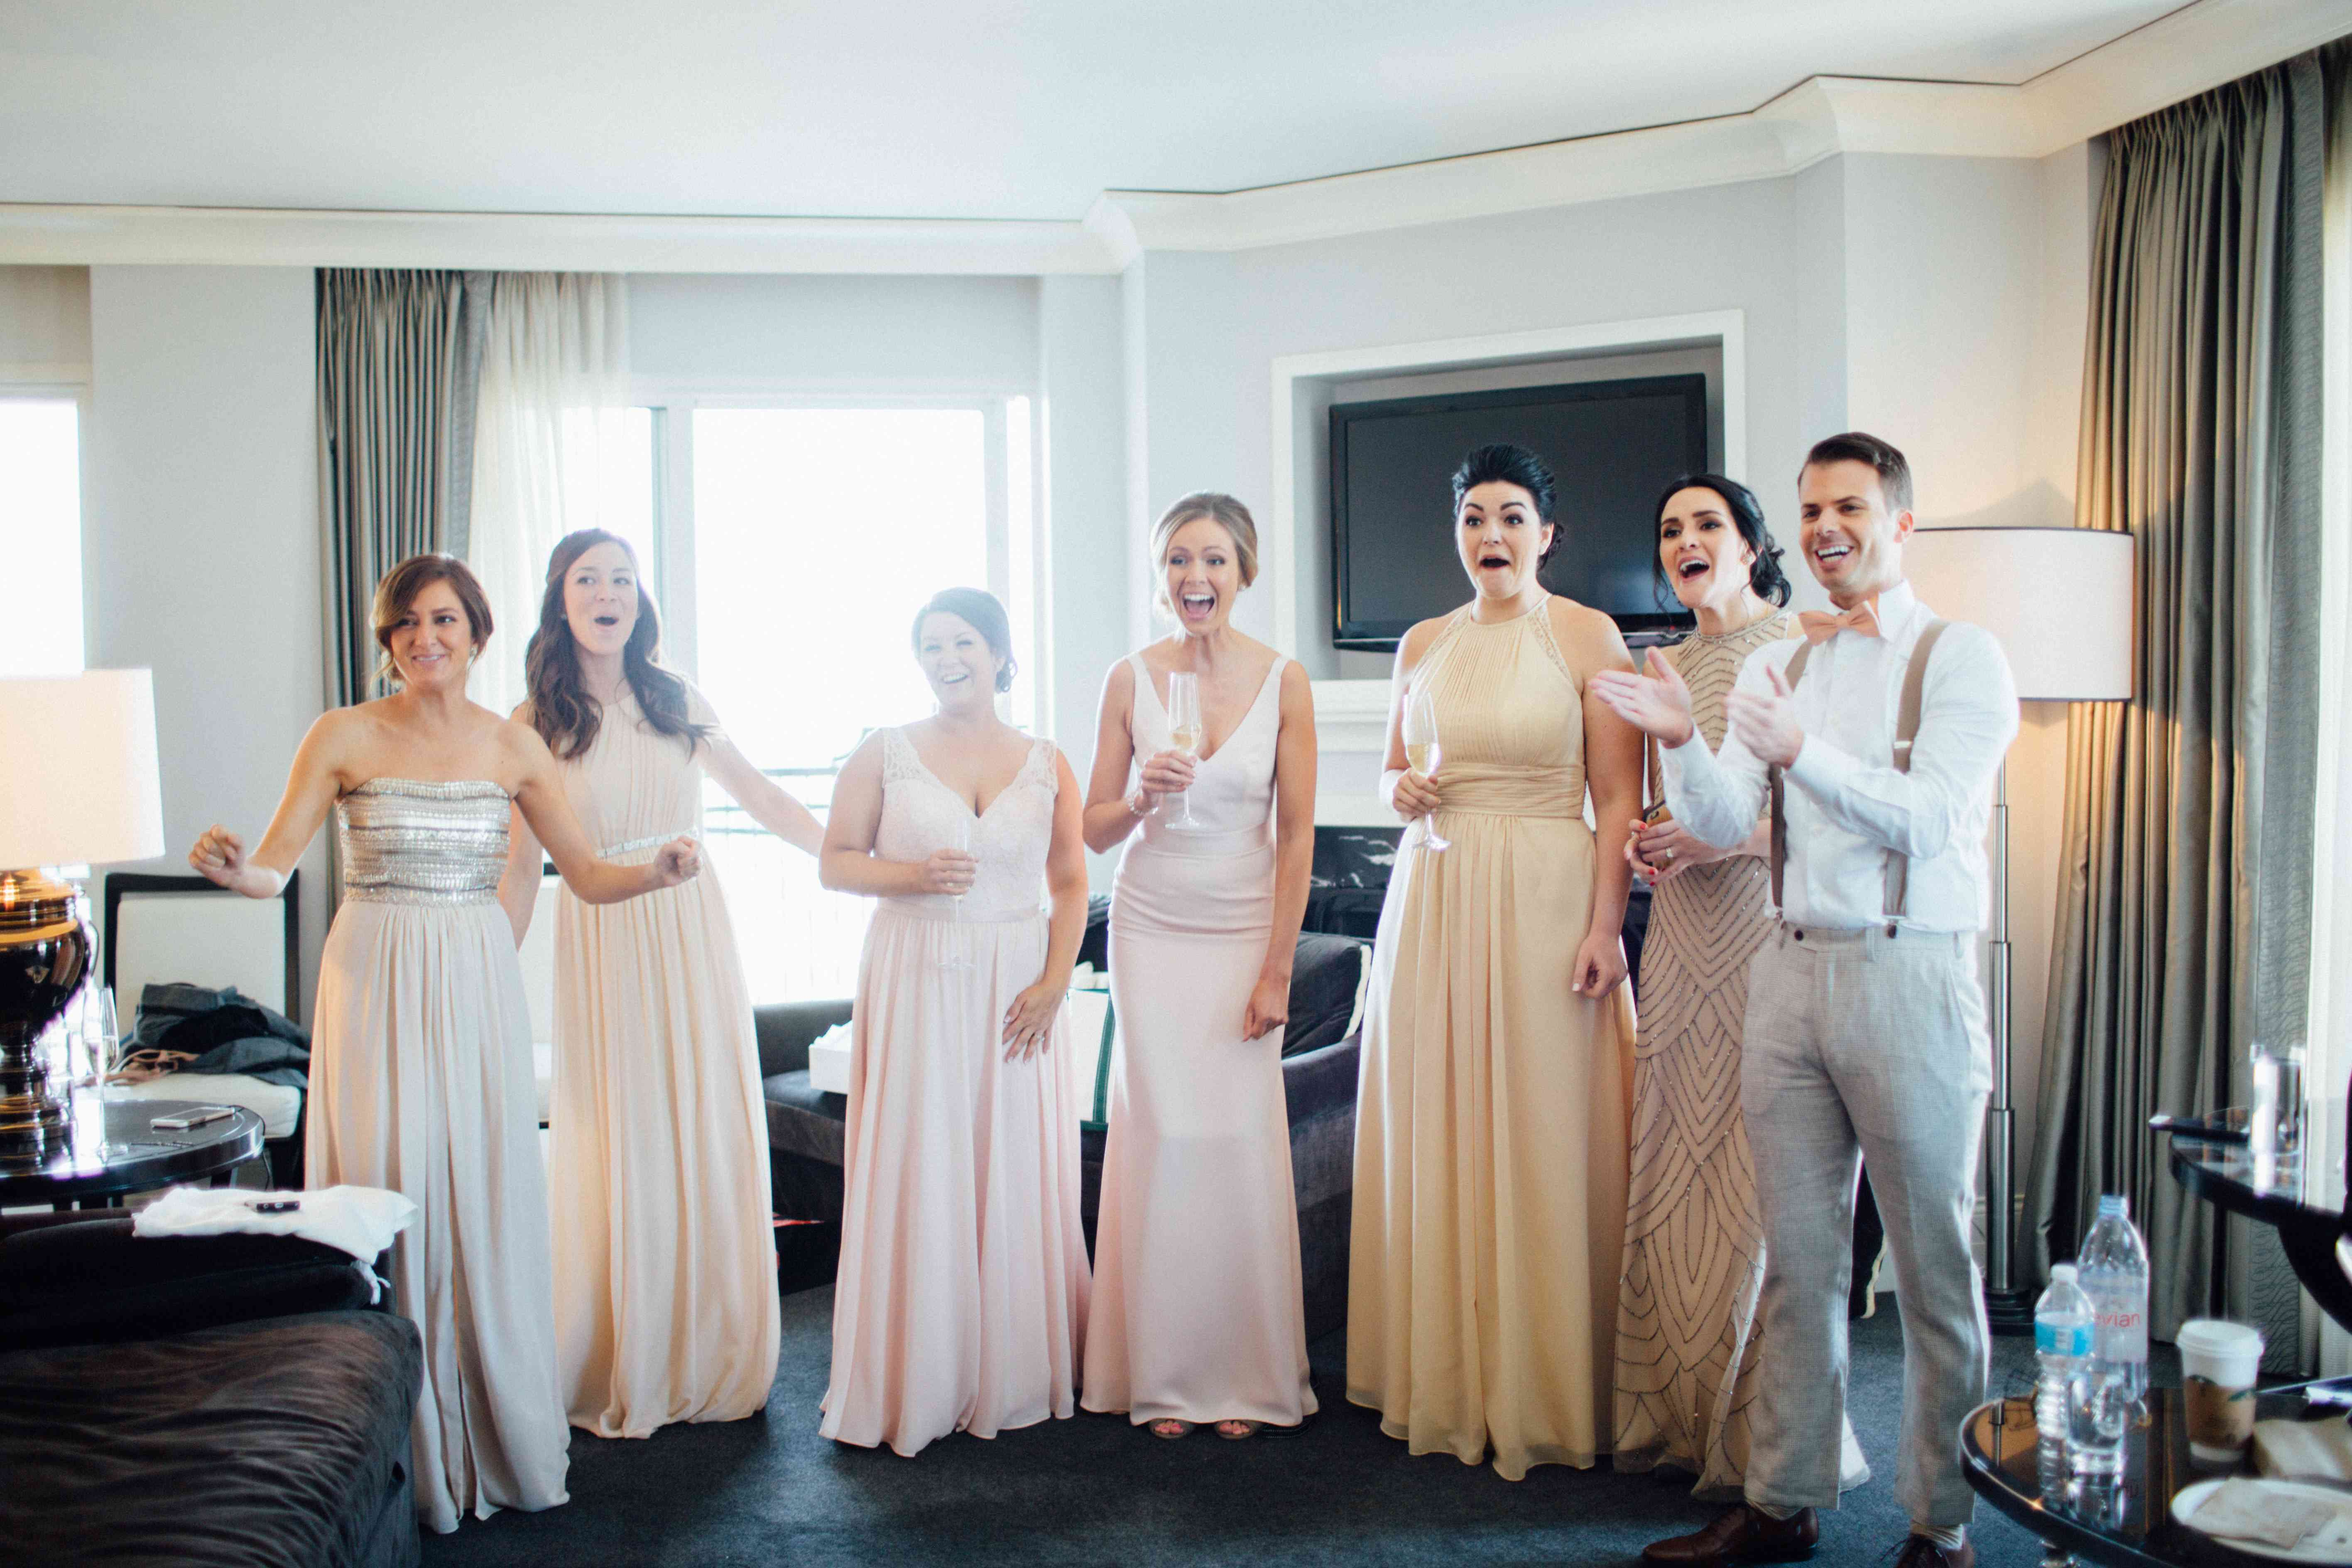 <p>Bridal Party Getting Ready</p><br><br>